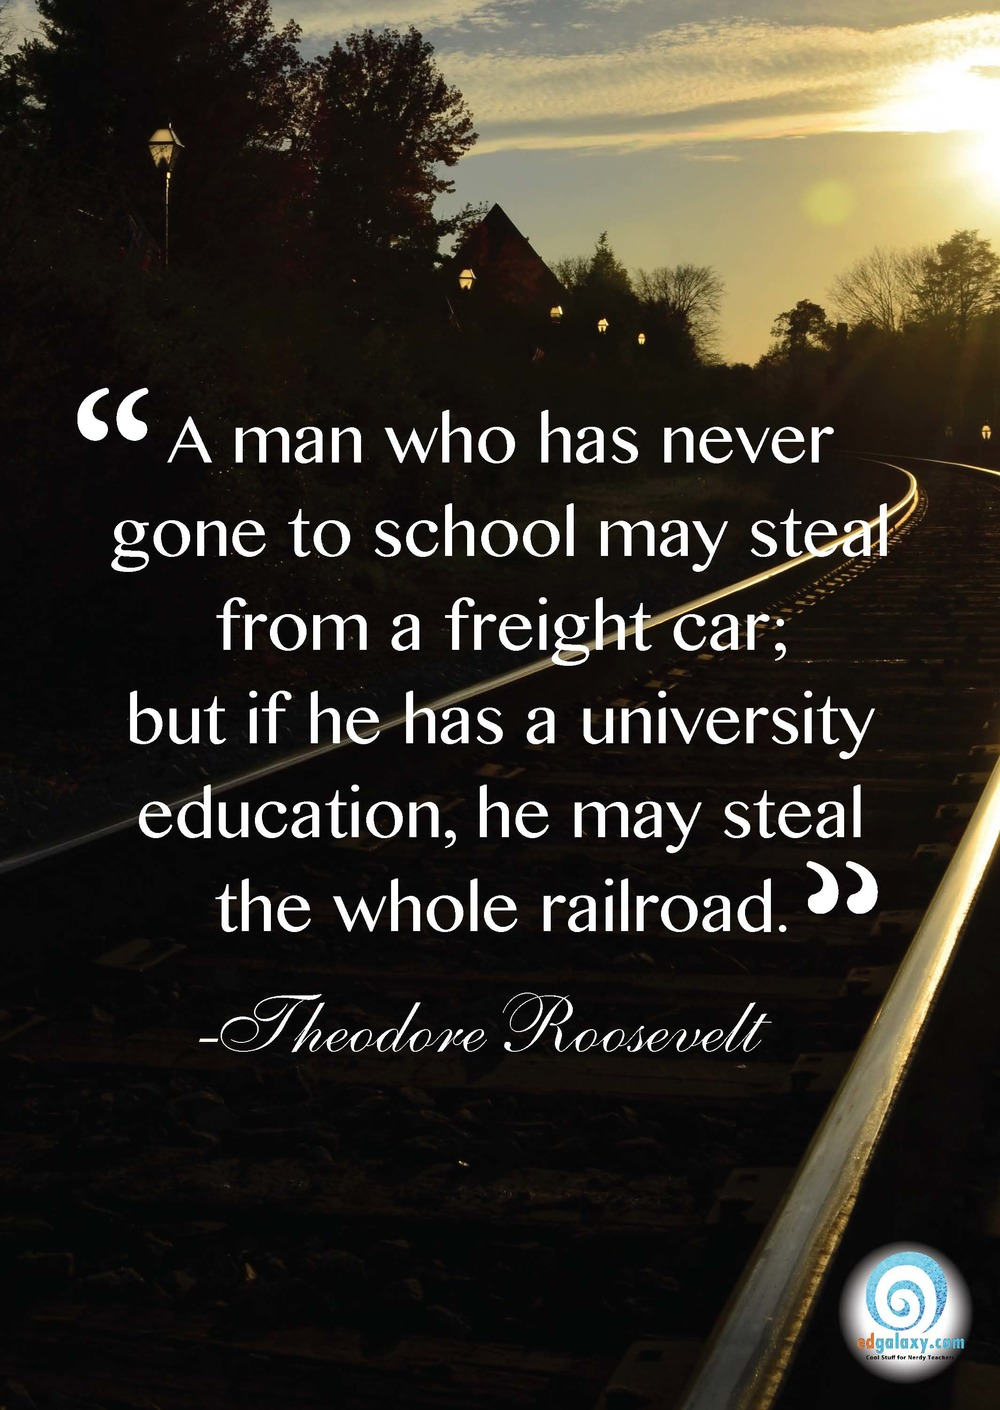 Quotes about Wisdom and education 51 quotes